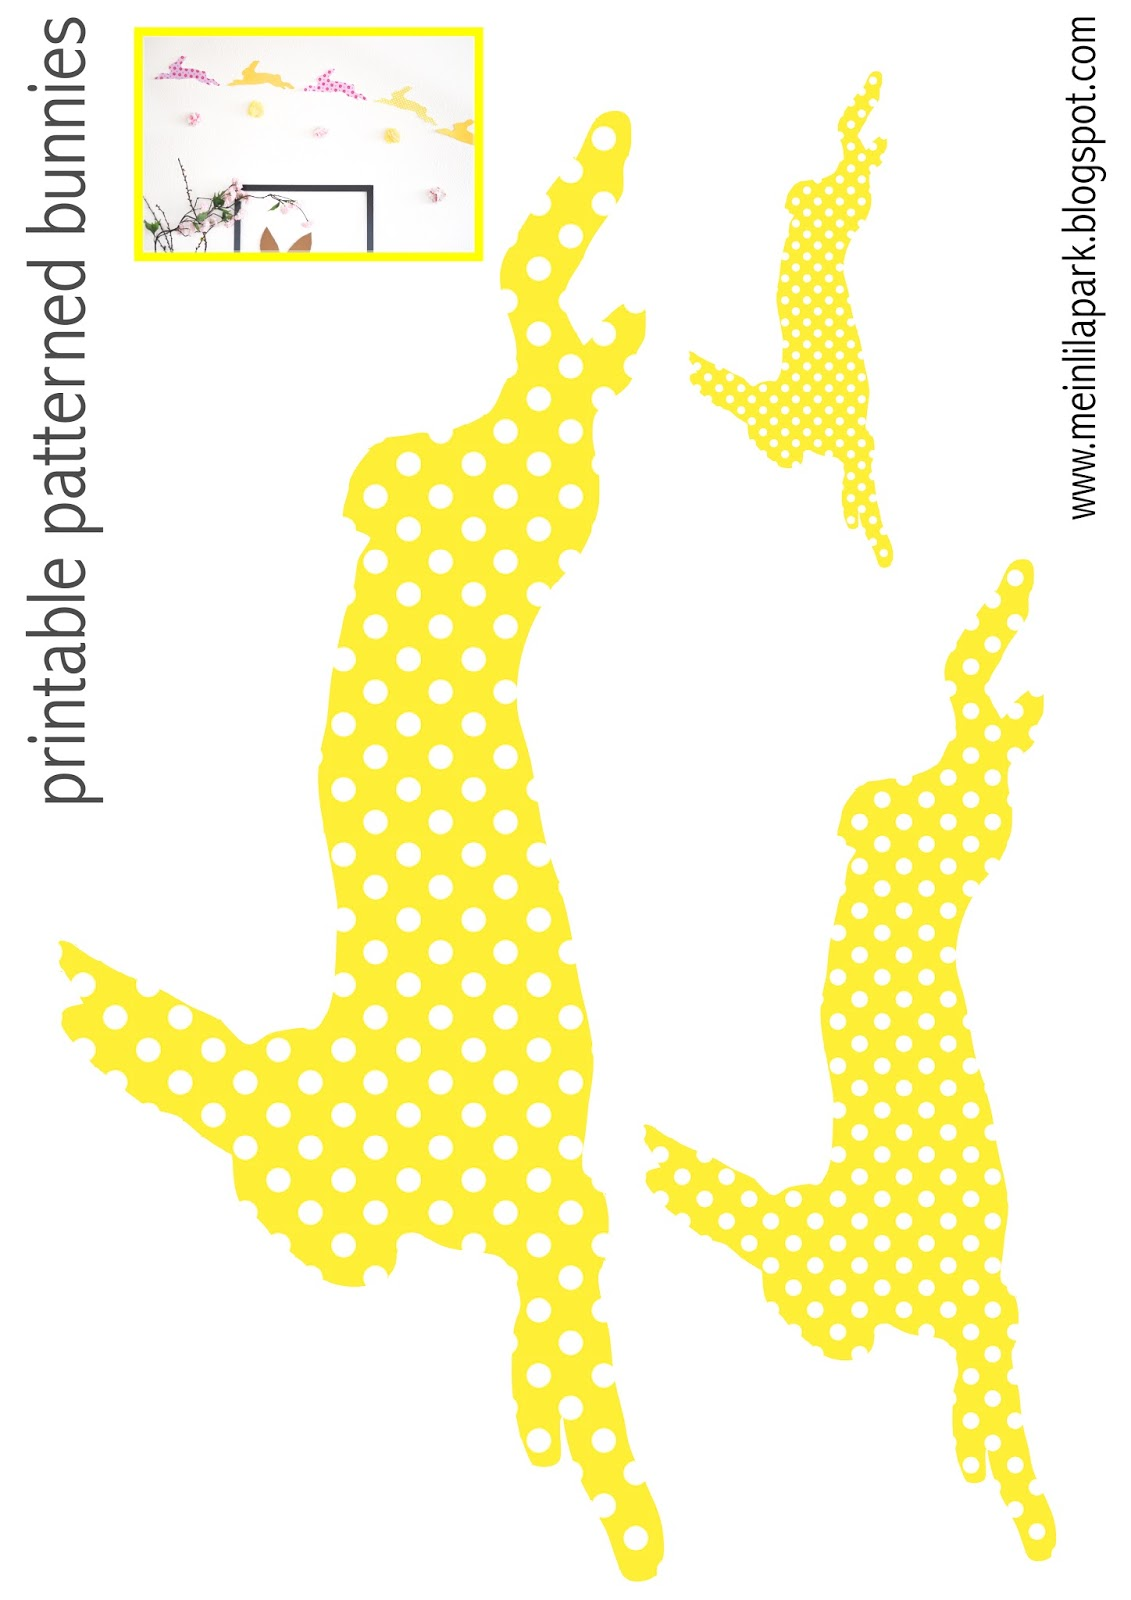 Free printable patterned bunny templates - ausdruckbare Hasen ...